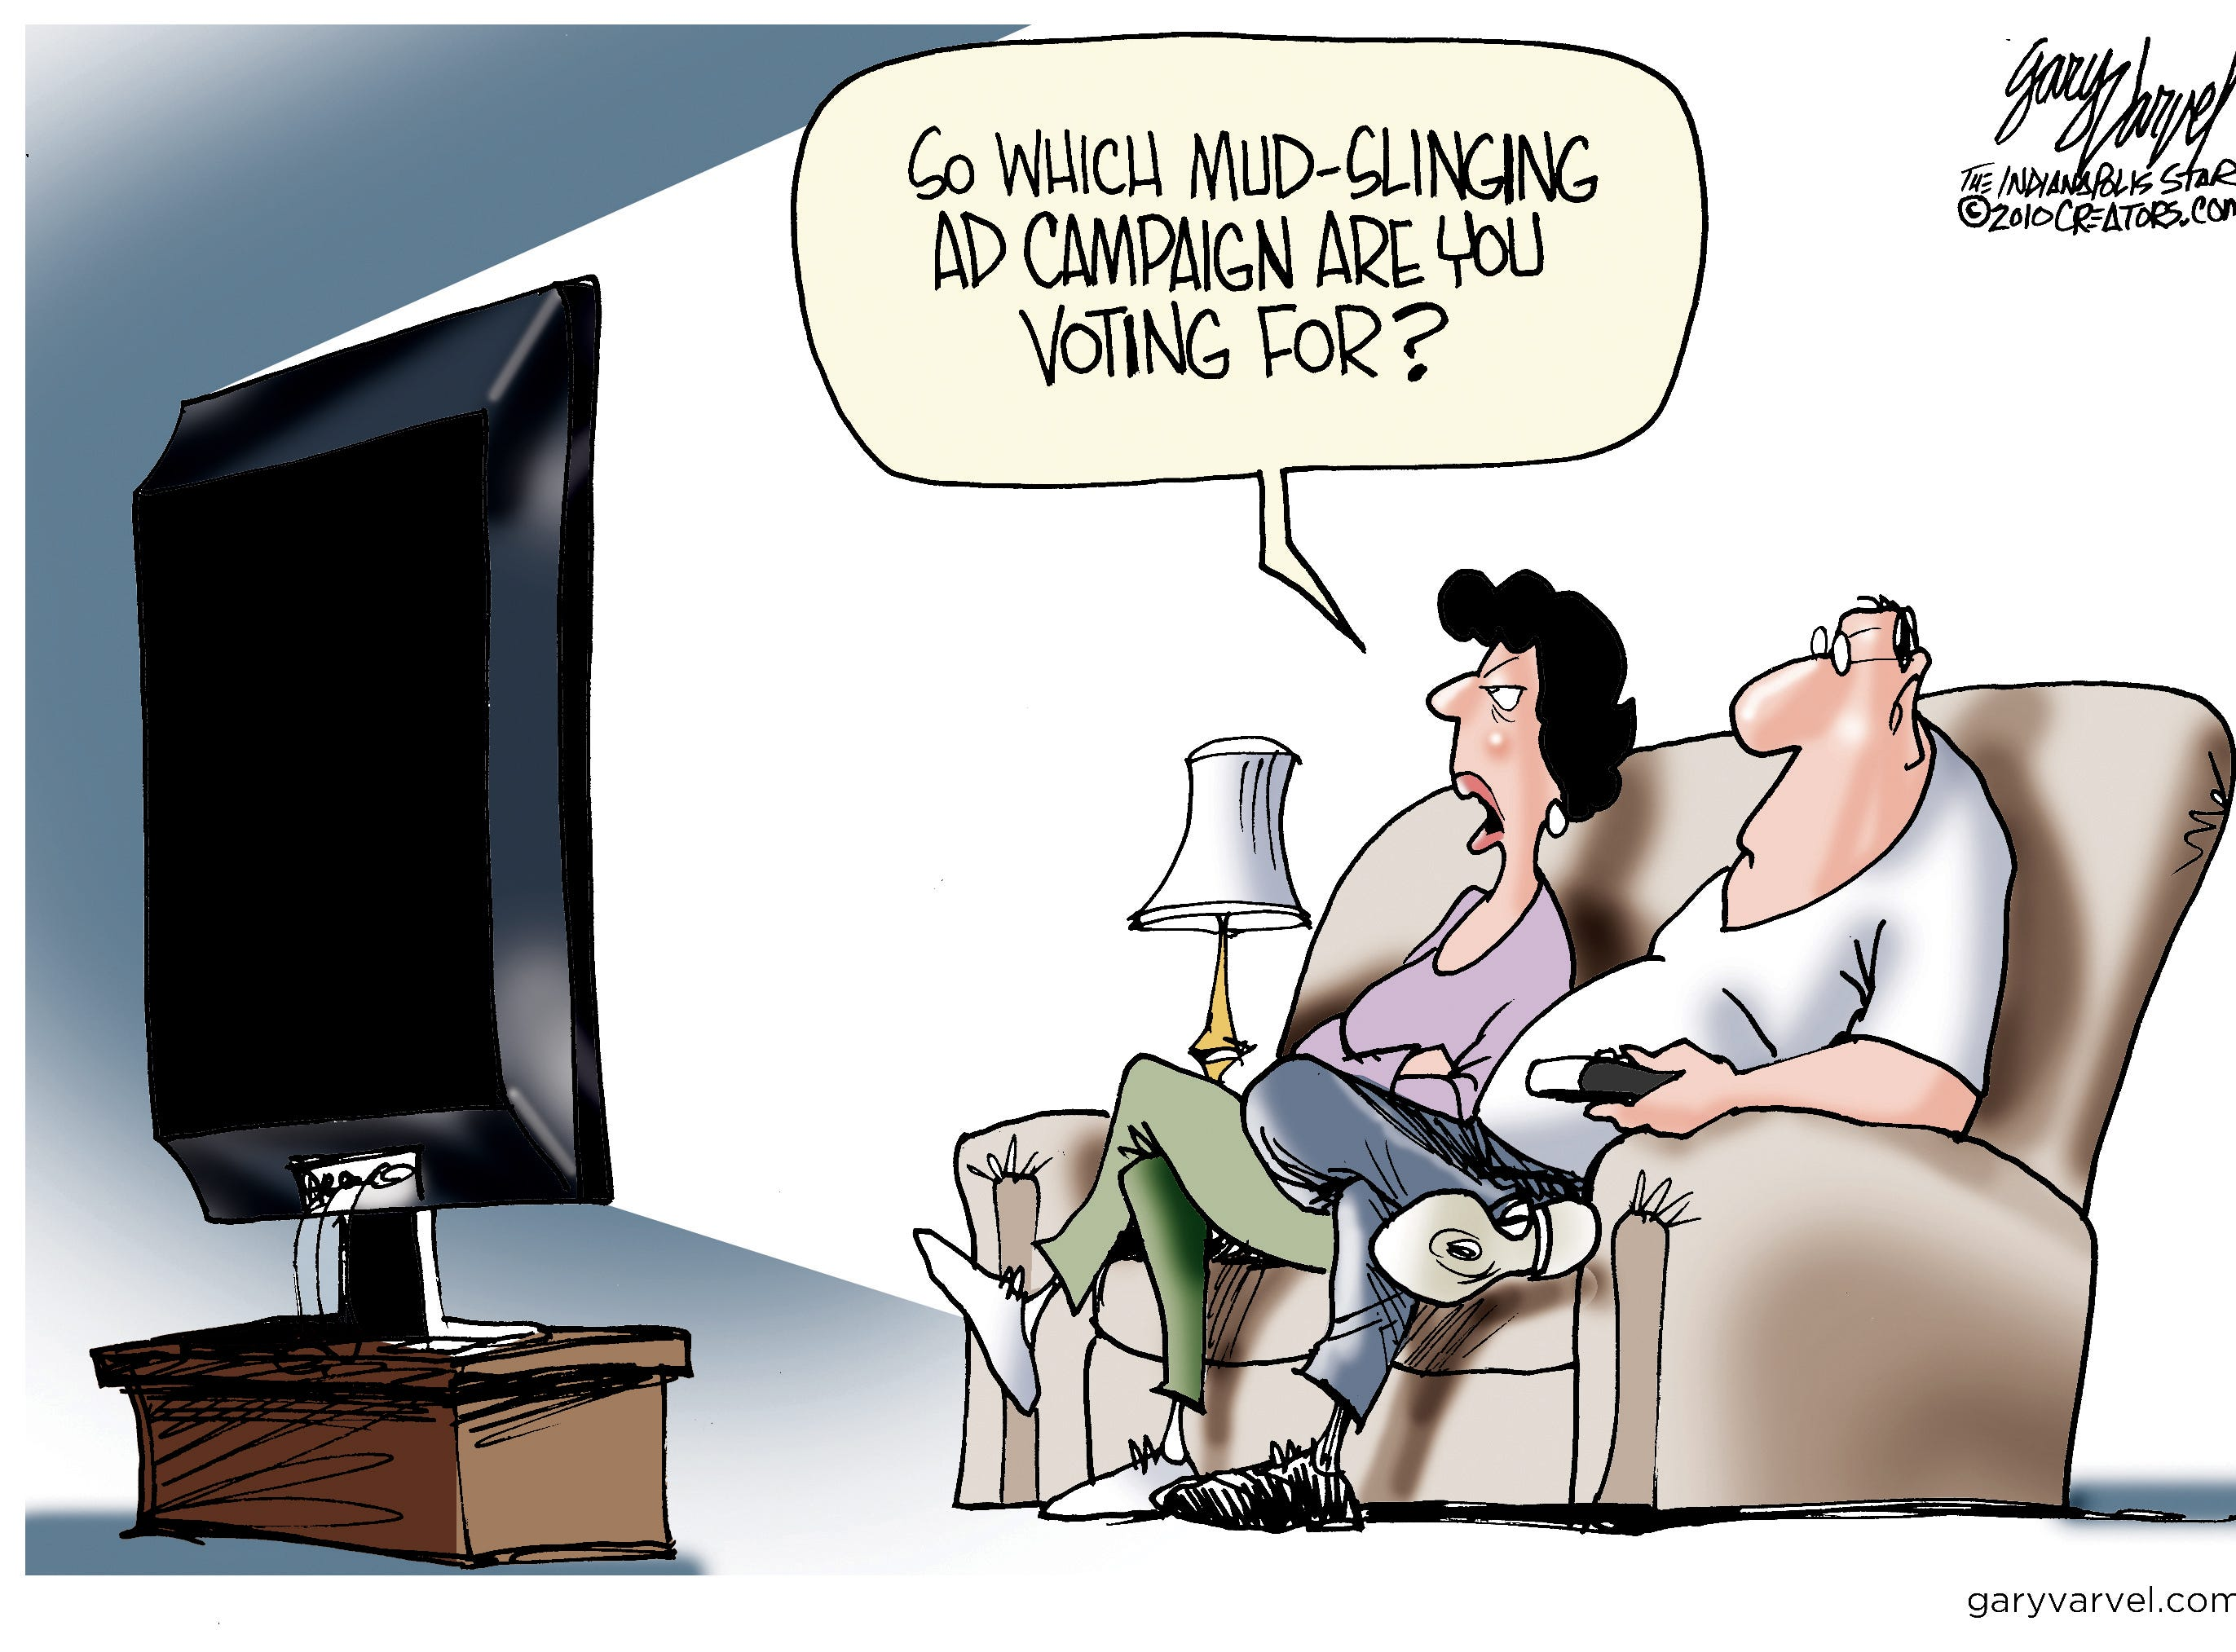 Voters occasionally vote for the lesser of two evils.